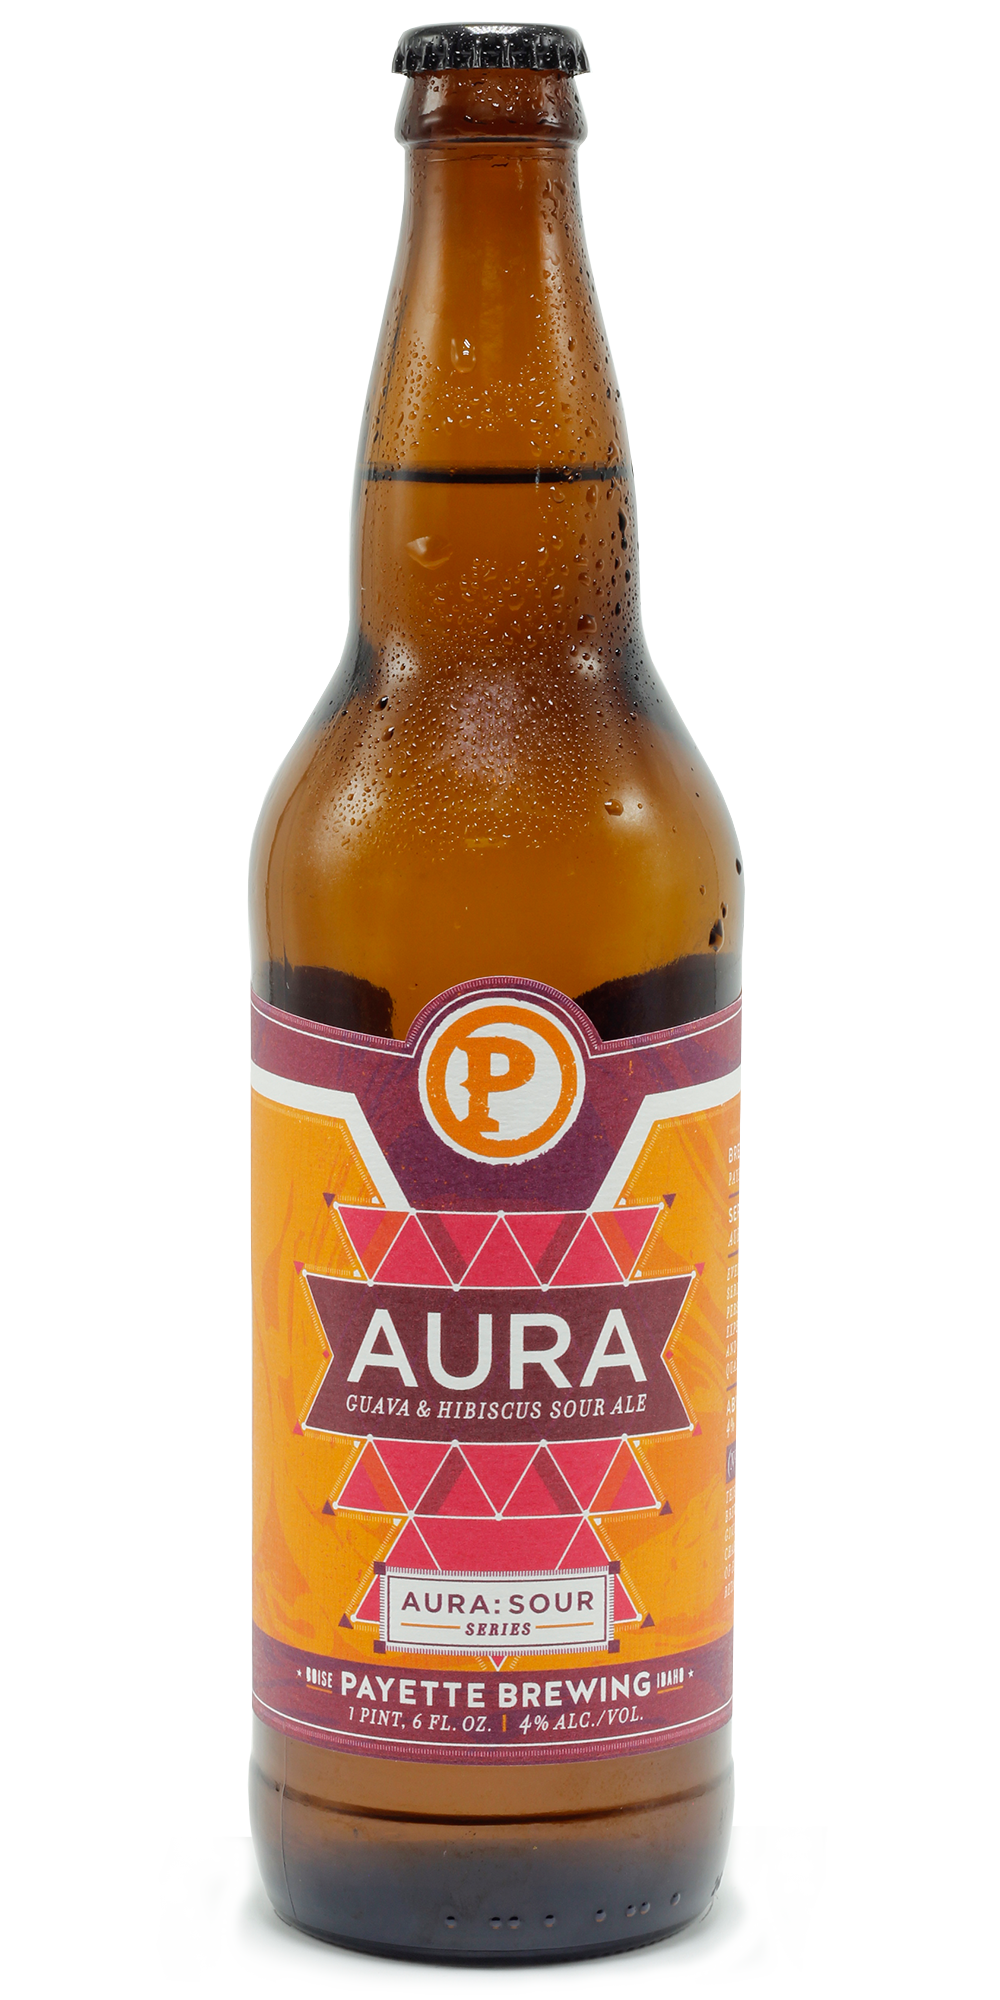 PayetteBrewing_Aura_Guava&Hibiscus.png